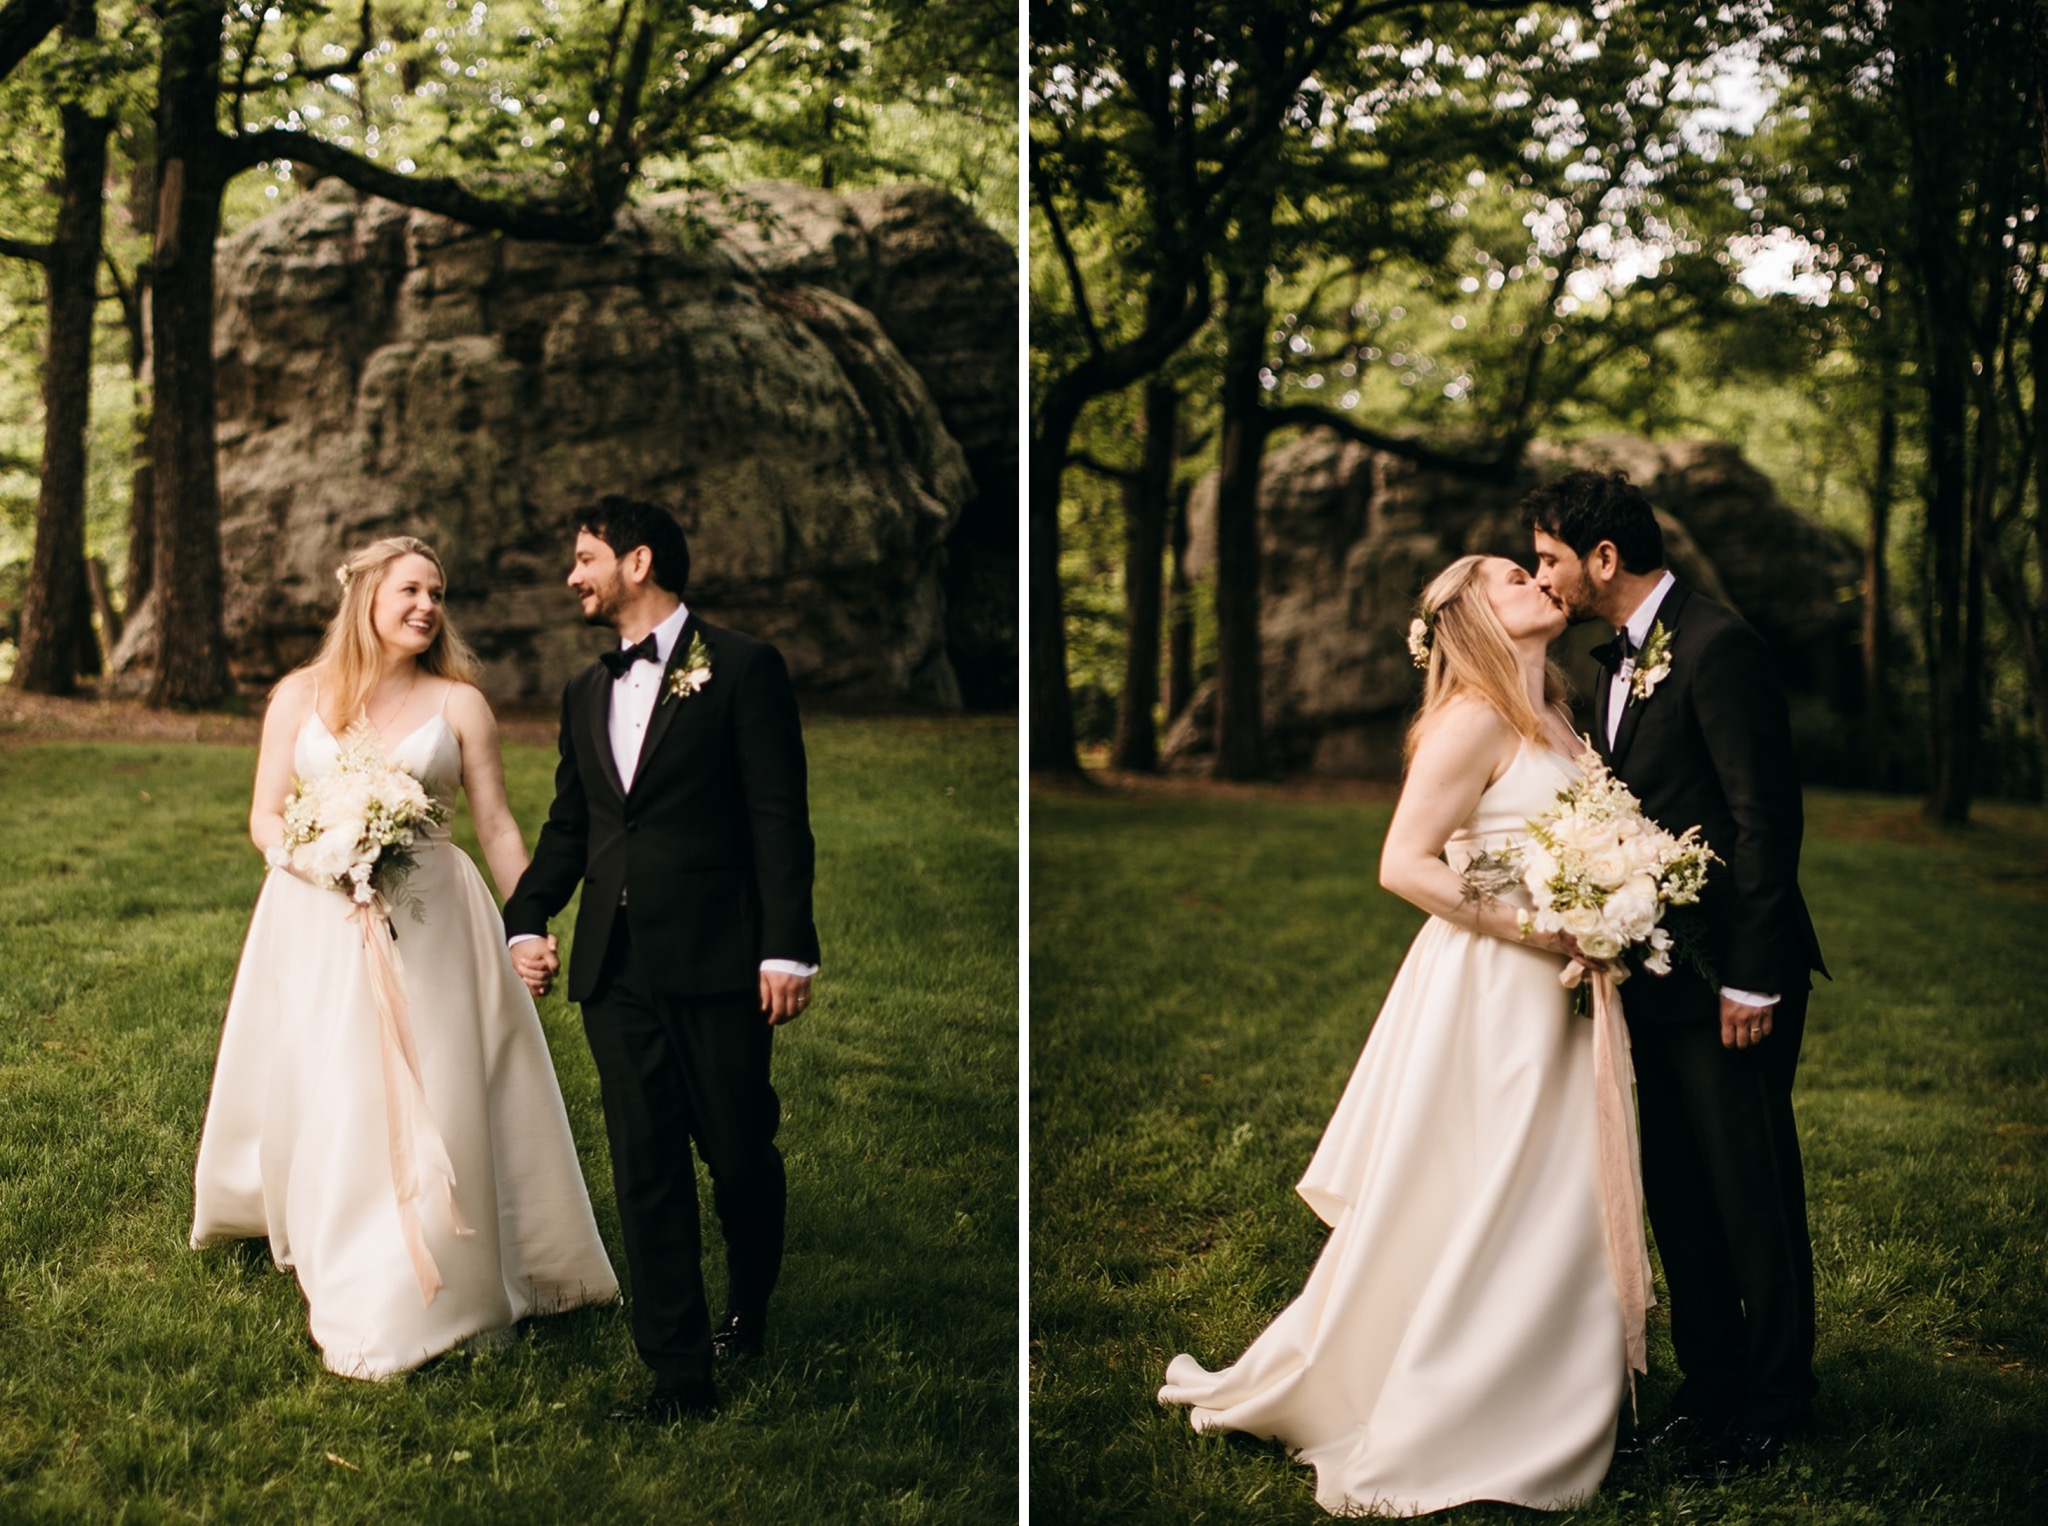 bride and groom kiss in grassy field near large rocks at Lookout Mountain Club wedding reception